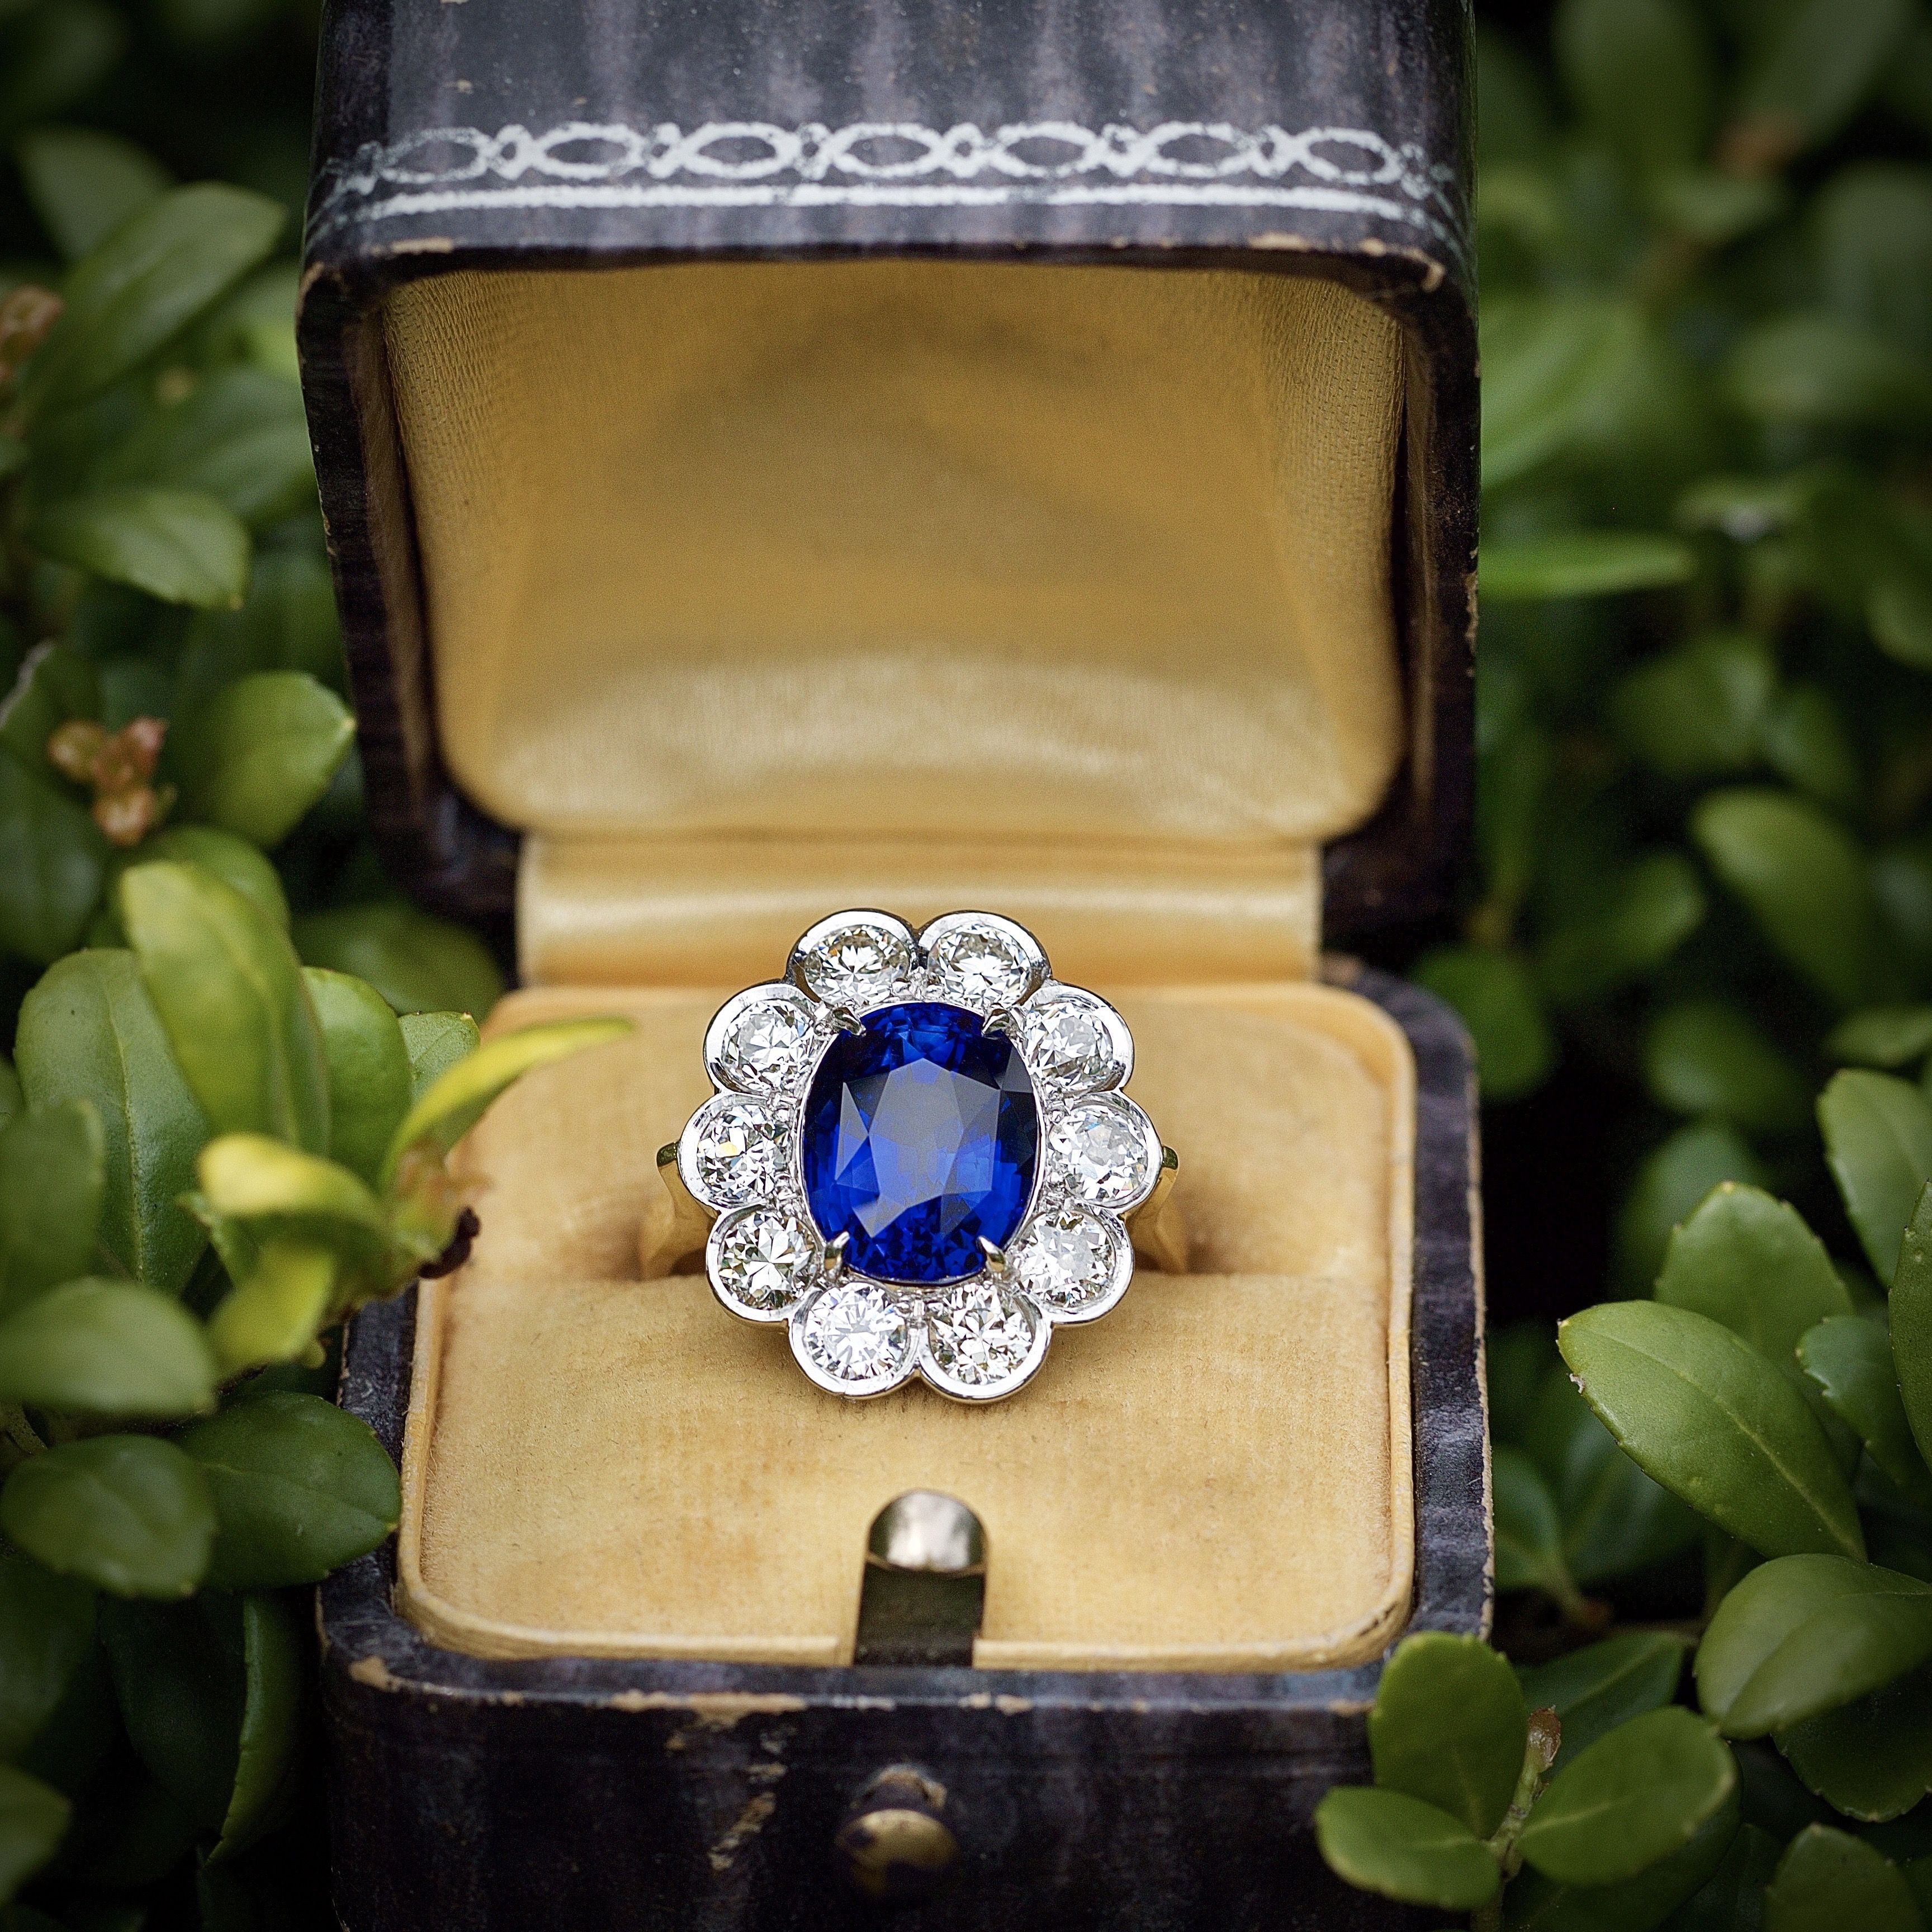 Royal Blue Sapphire and Diamond Ring GIA Cert 4 Carat